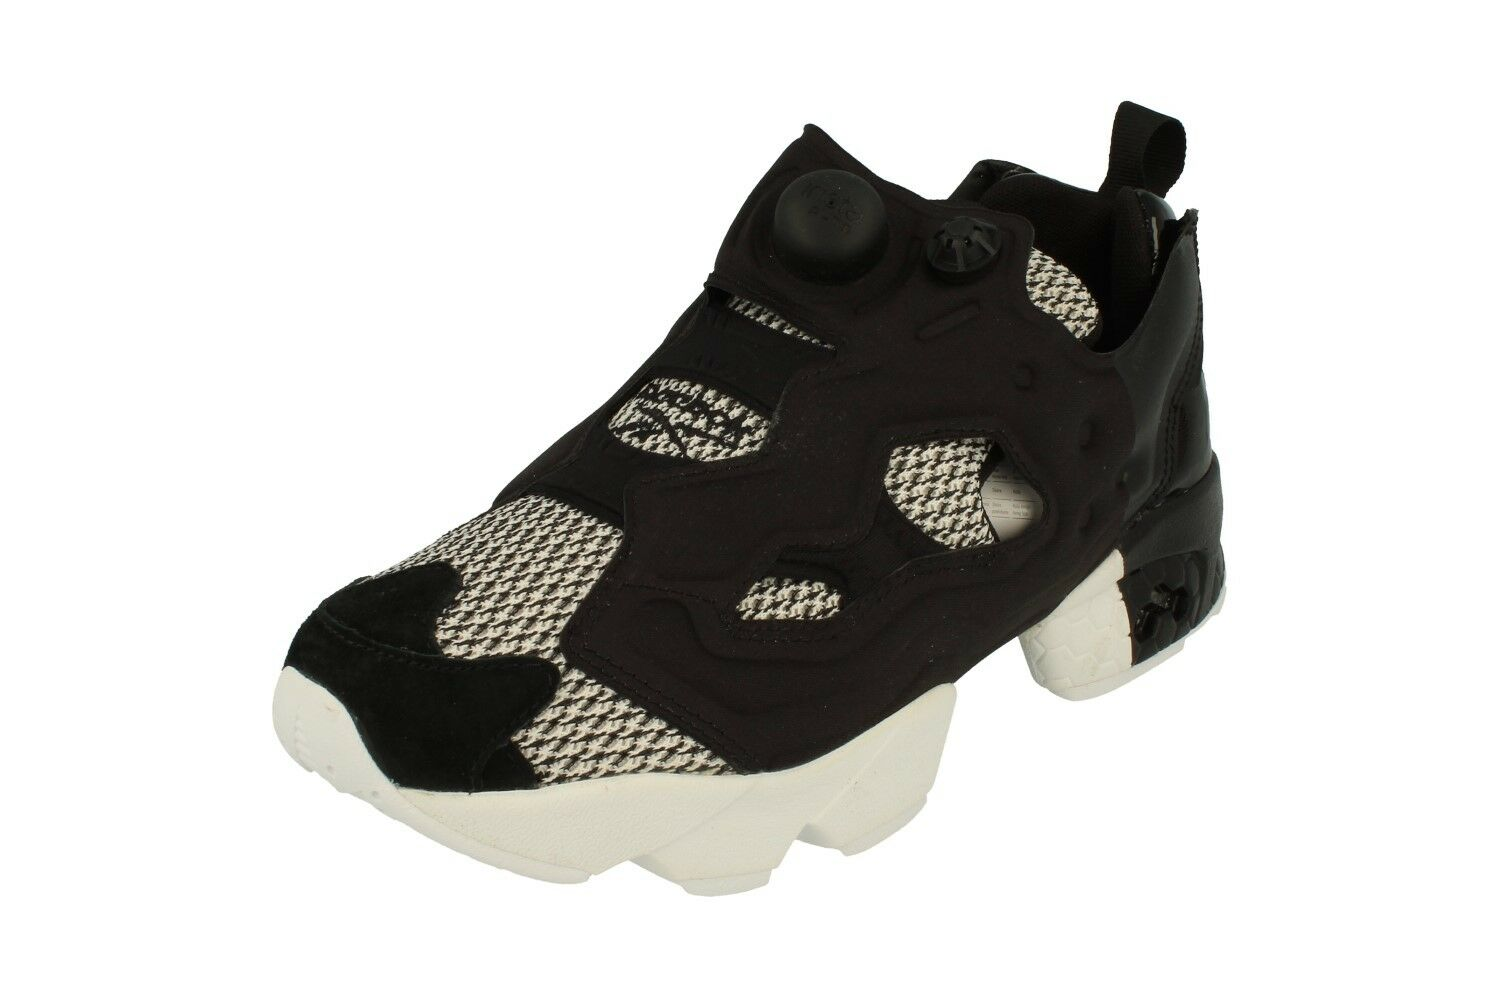 Reebok Instapump Fury Og Blk Scl Mens Running Trainers BD5009 Sneakers Shoes